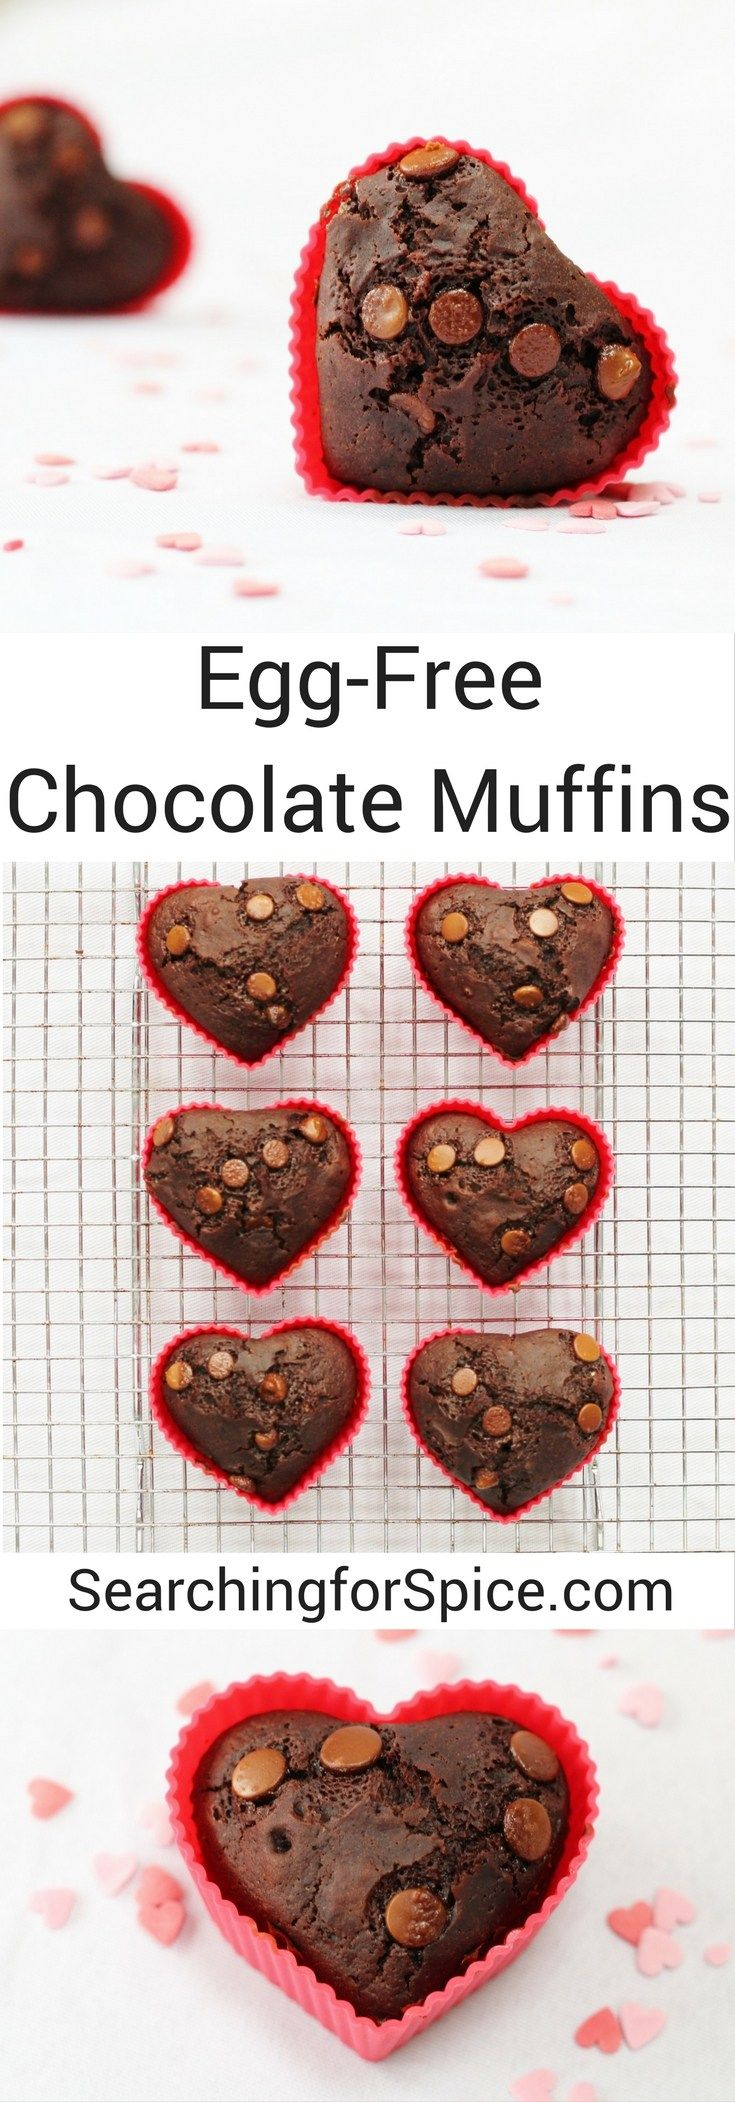 Egg-free chocolate muffins. Perfect snack for Valentine's day or any other day!